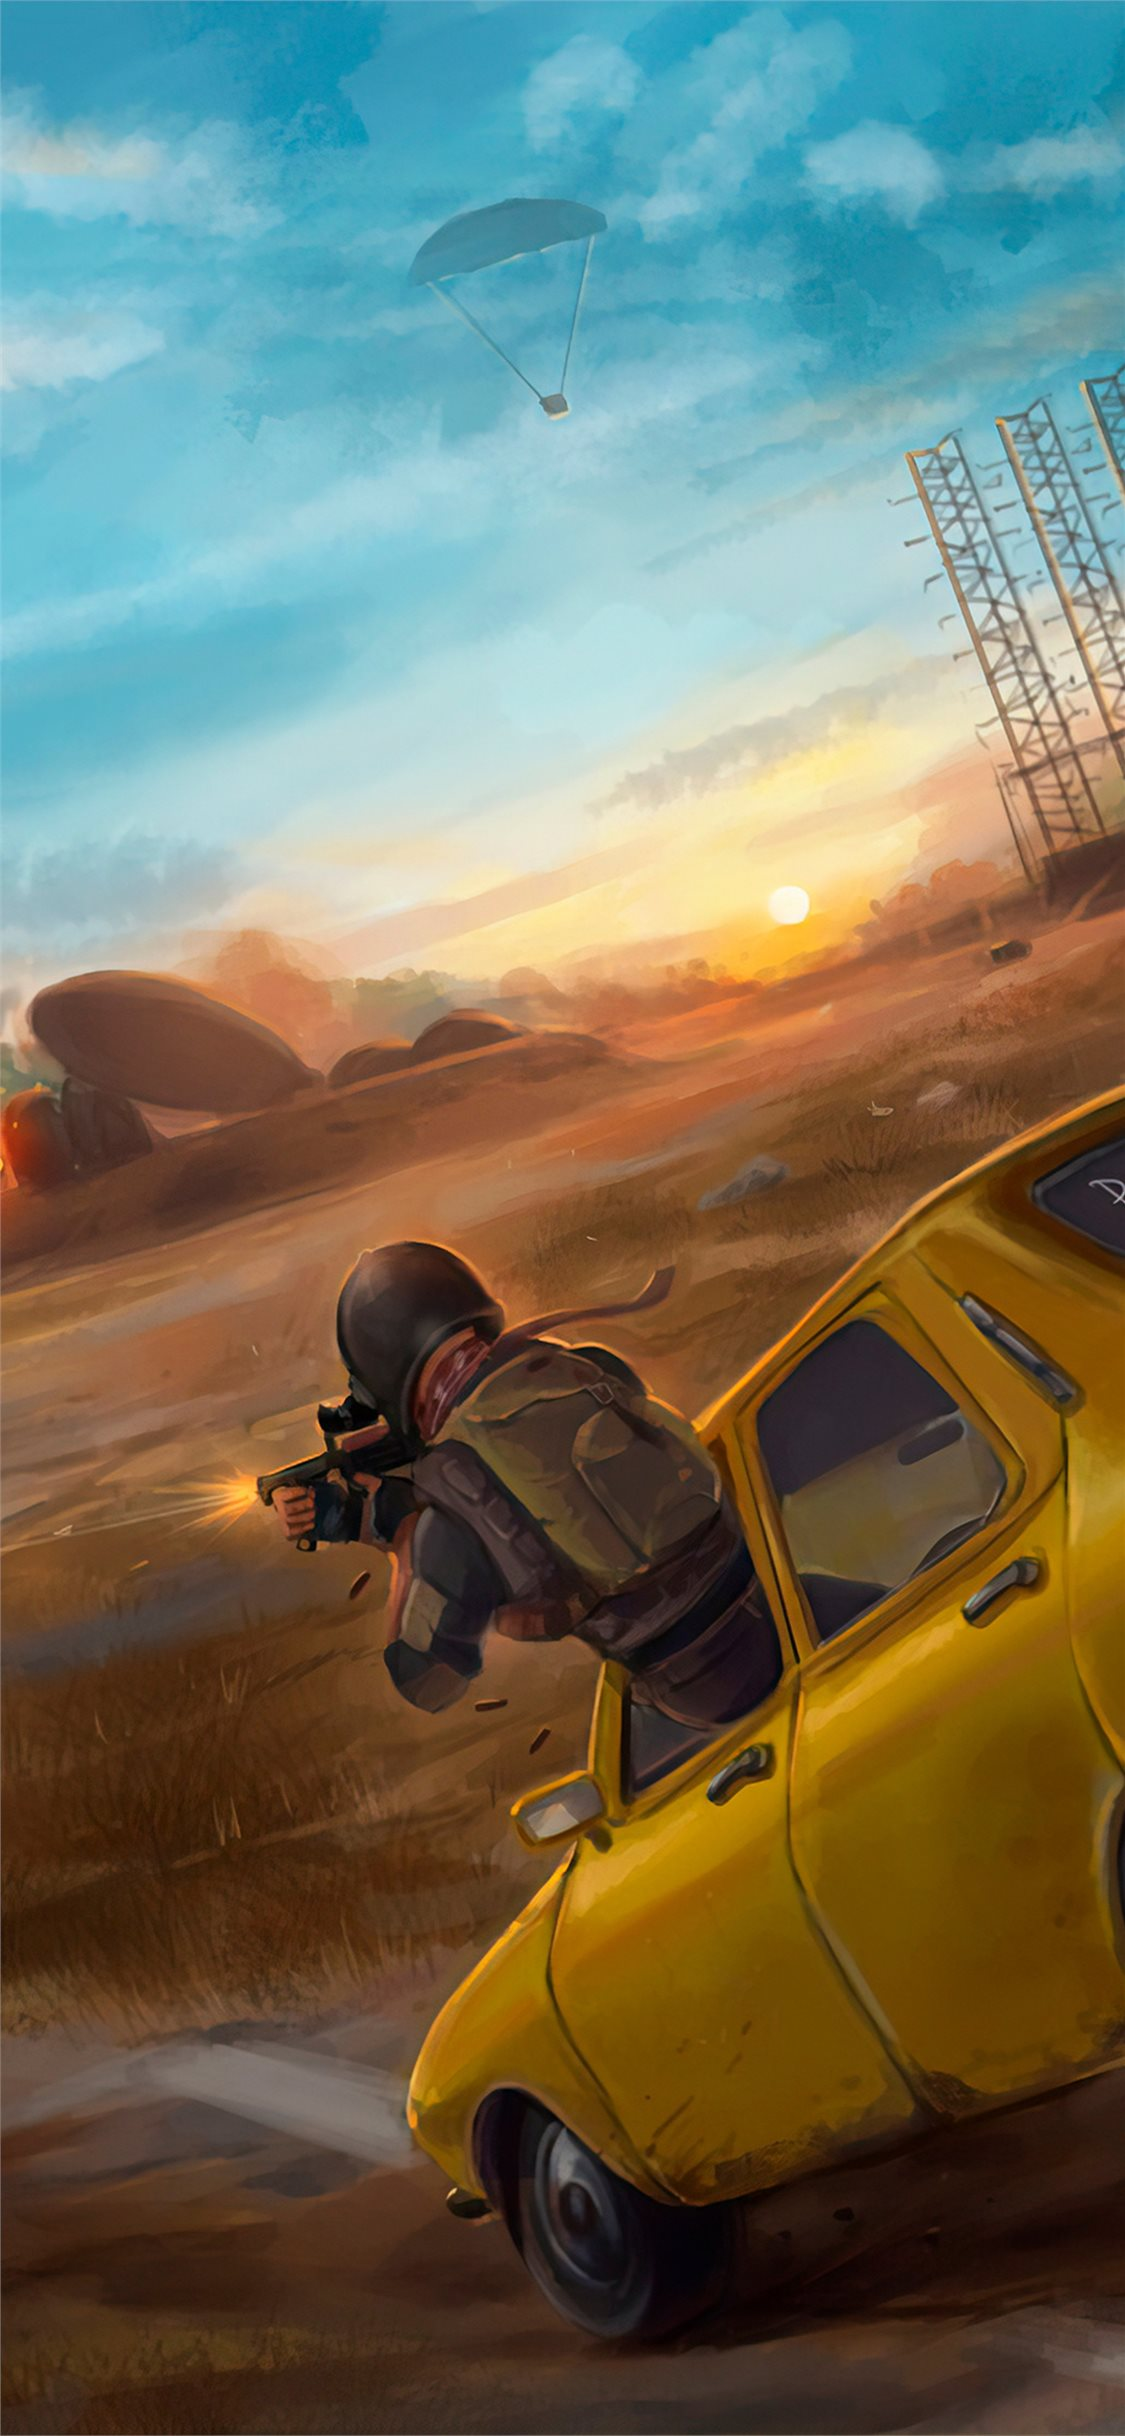 Pubg Car Fight 4k Iphone X Wallpapers Free Download